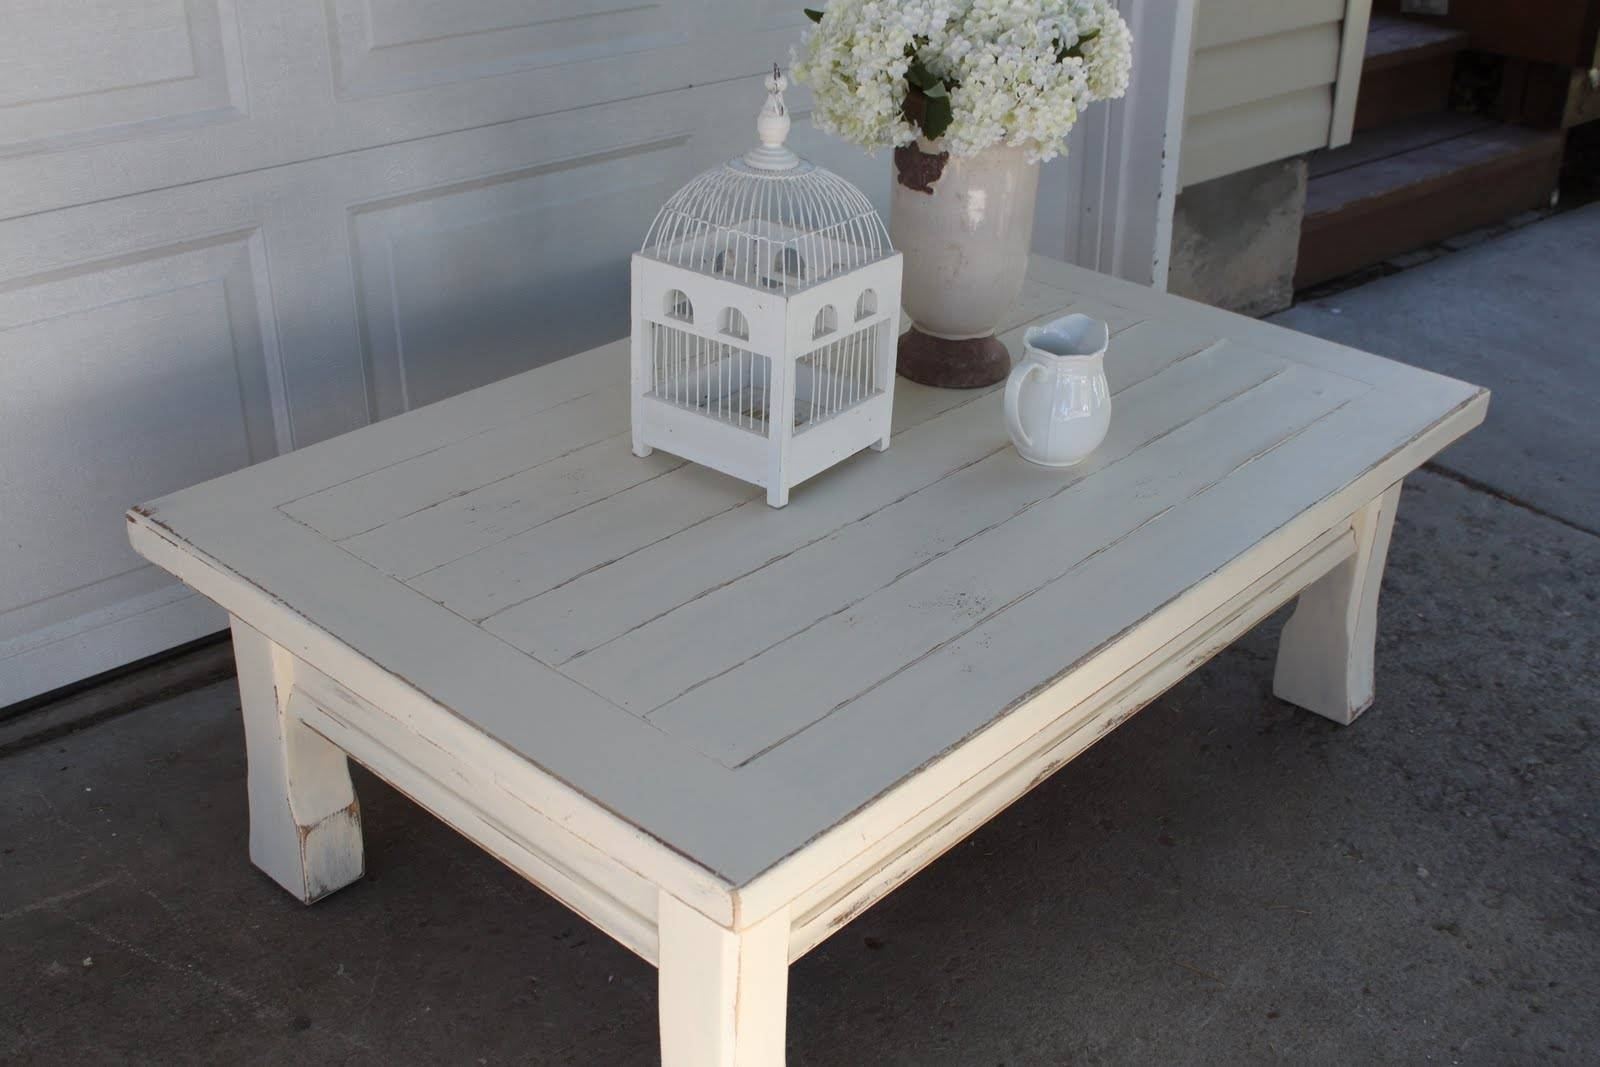 Shabby Chic Coffee Table Furniture Shabby Chic Coffee Table Diy in High Quality Coffee Tables (Image 27 of 30)